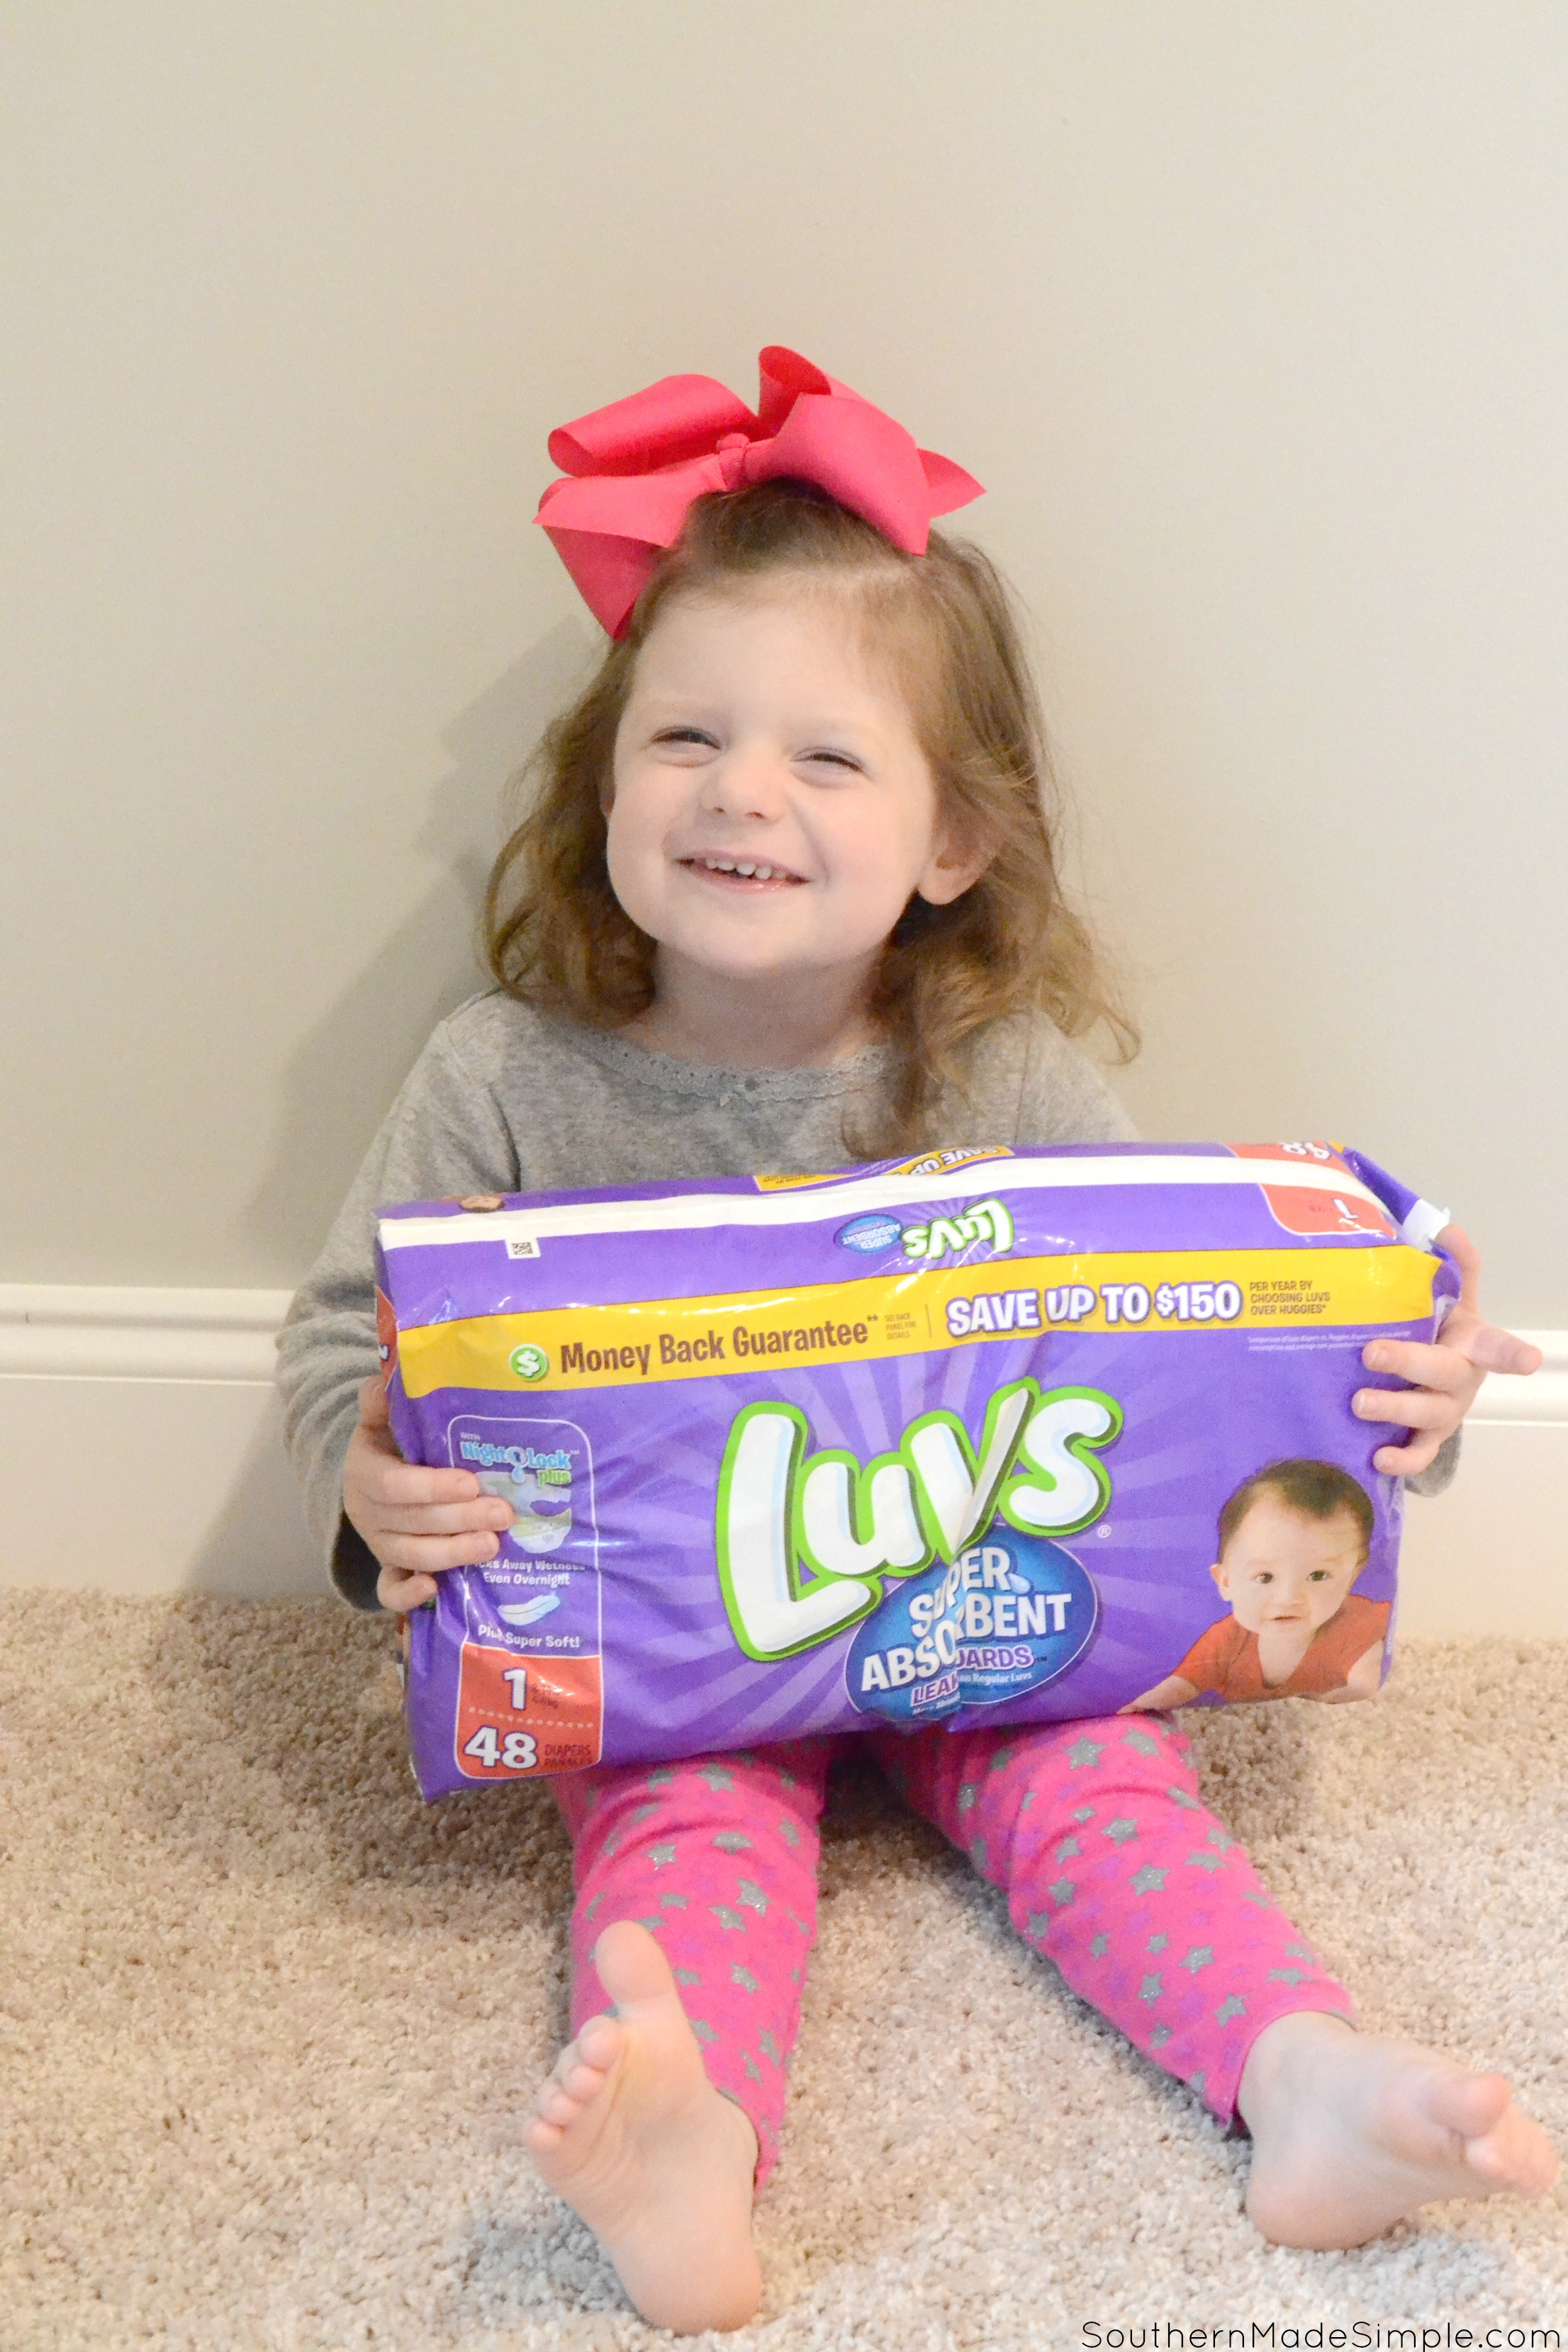 2nd time Moms don't necessarily trust something just because it costs more, and when it comes to finding the best disposable at the best price to get the job done, I choose Luvs! #MoreToLuv #ad